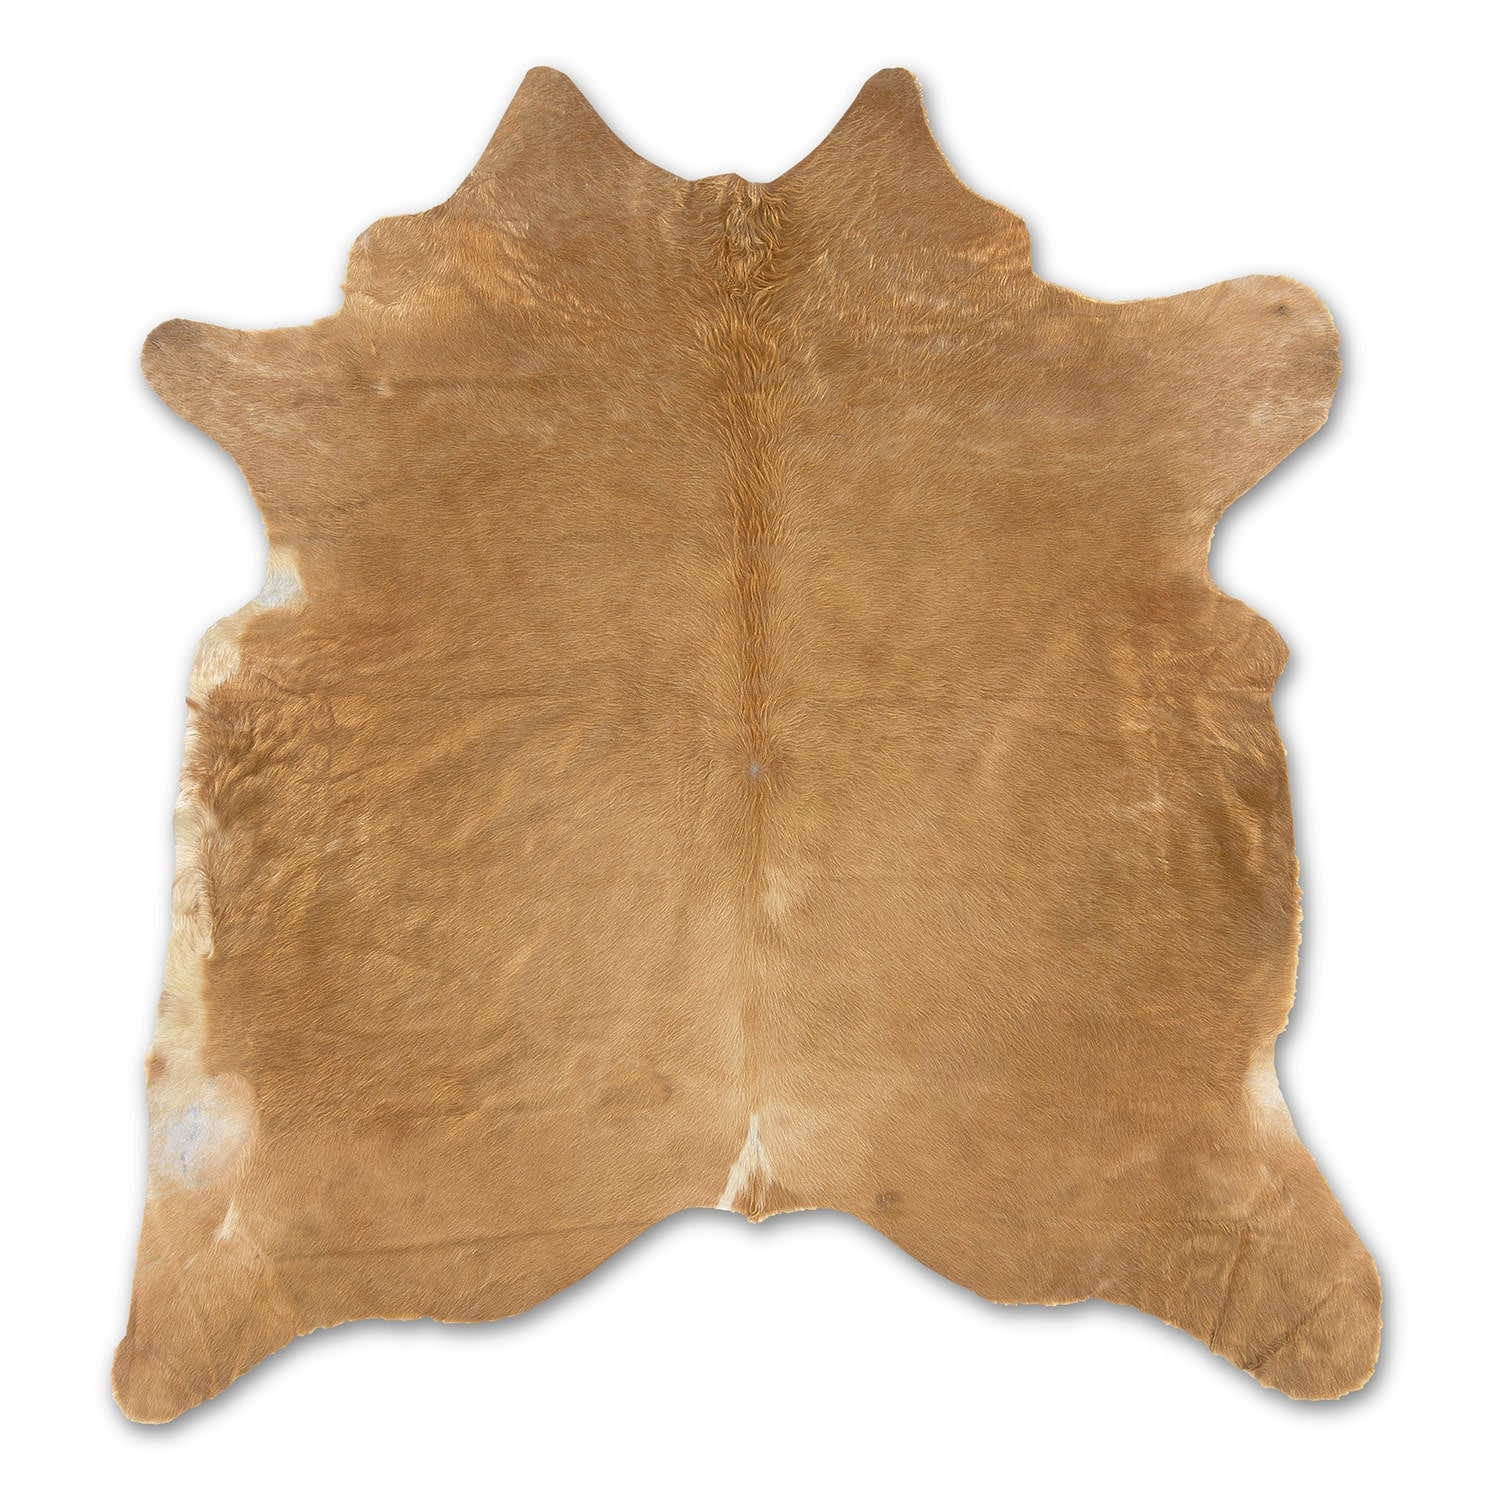 Rugs - Cowhide 5' x 7' Area Rug - Medium Brindle